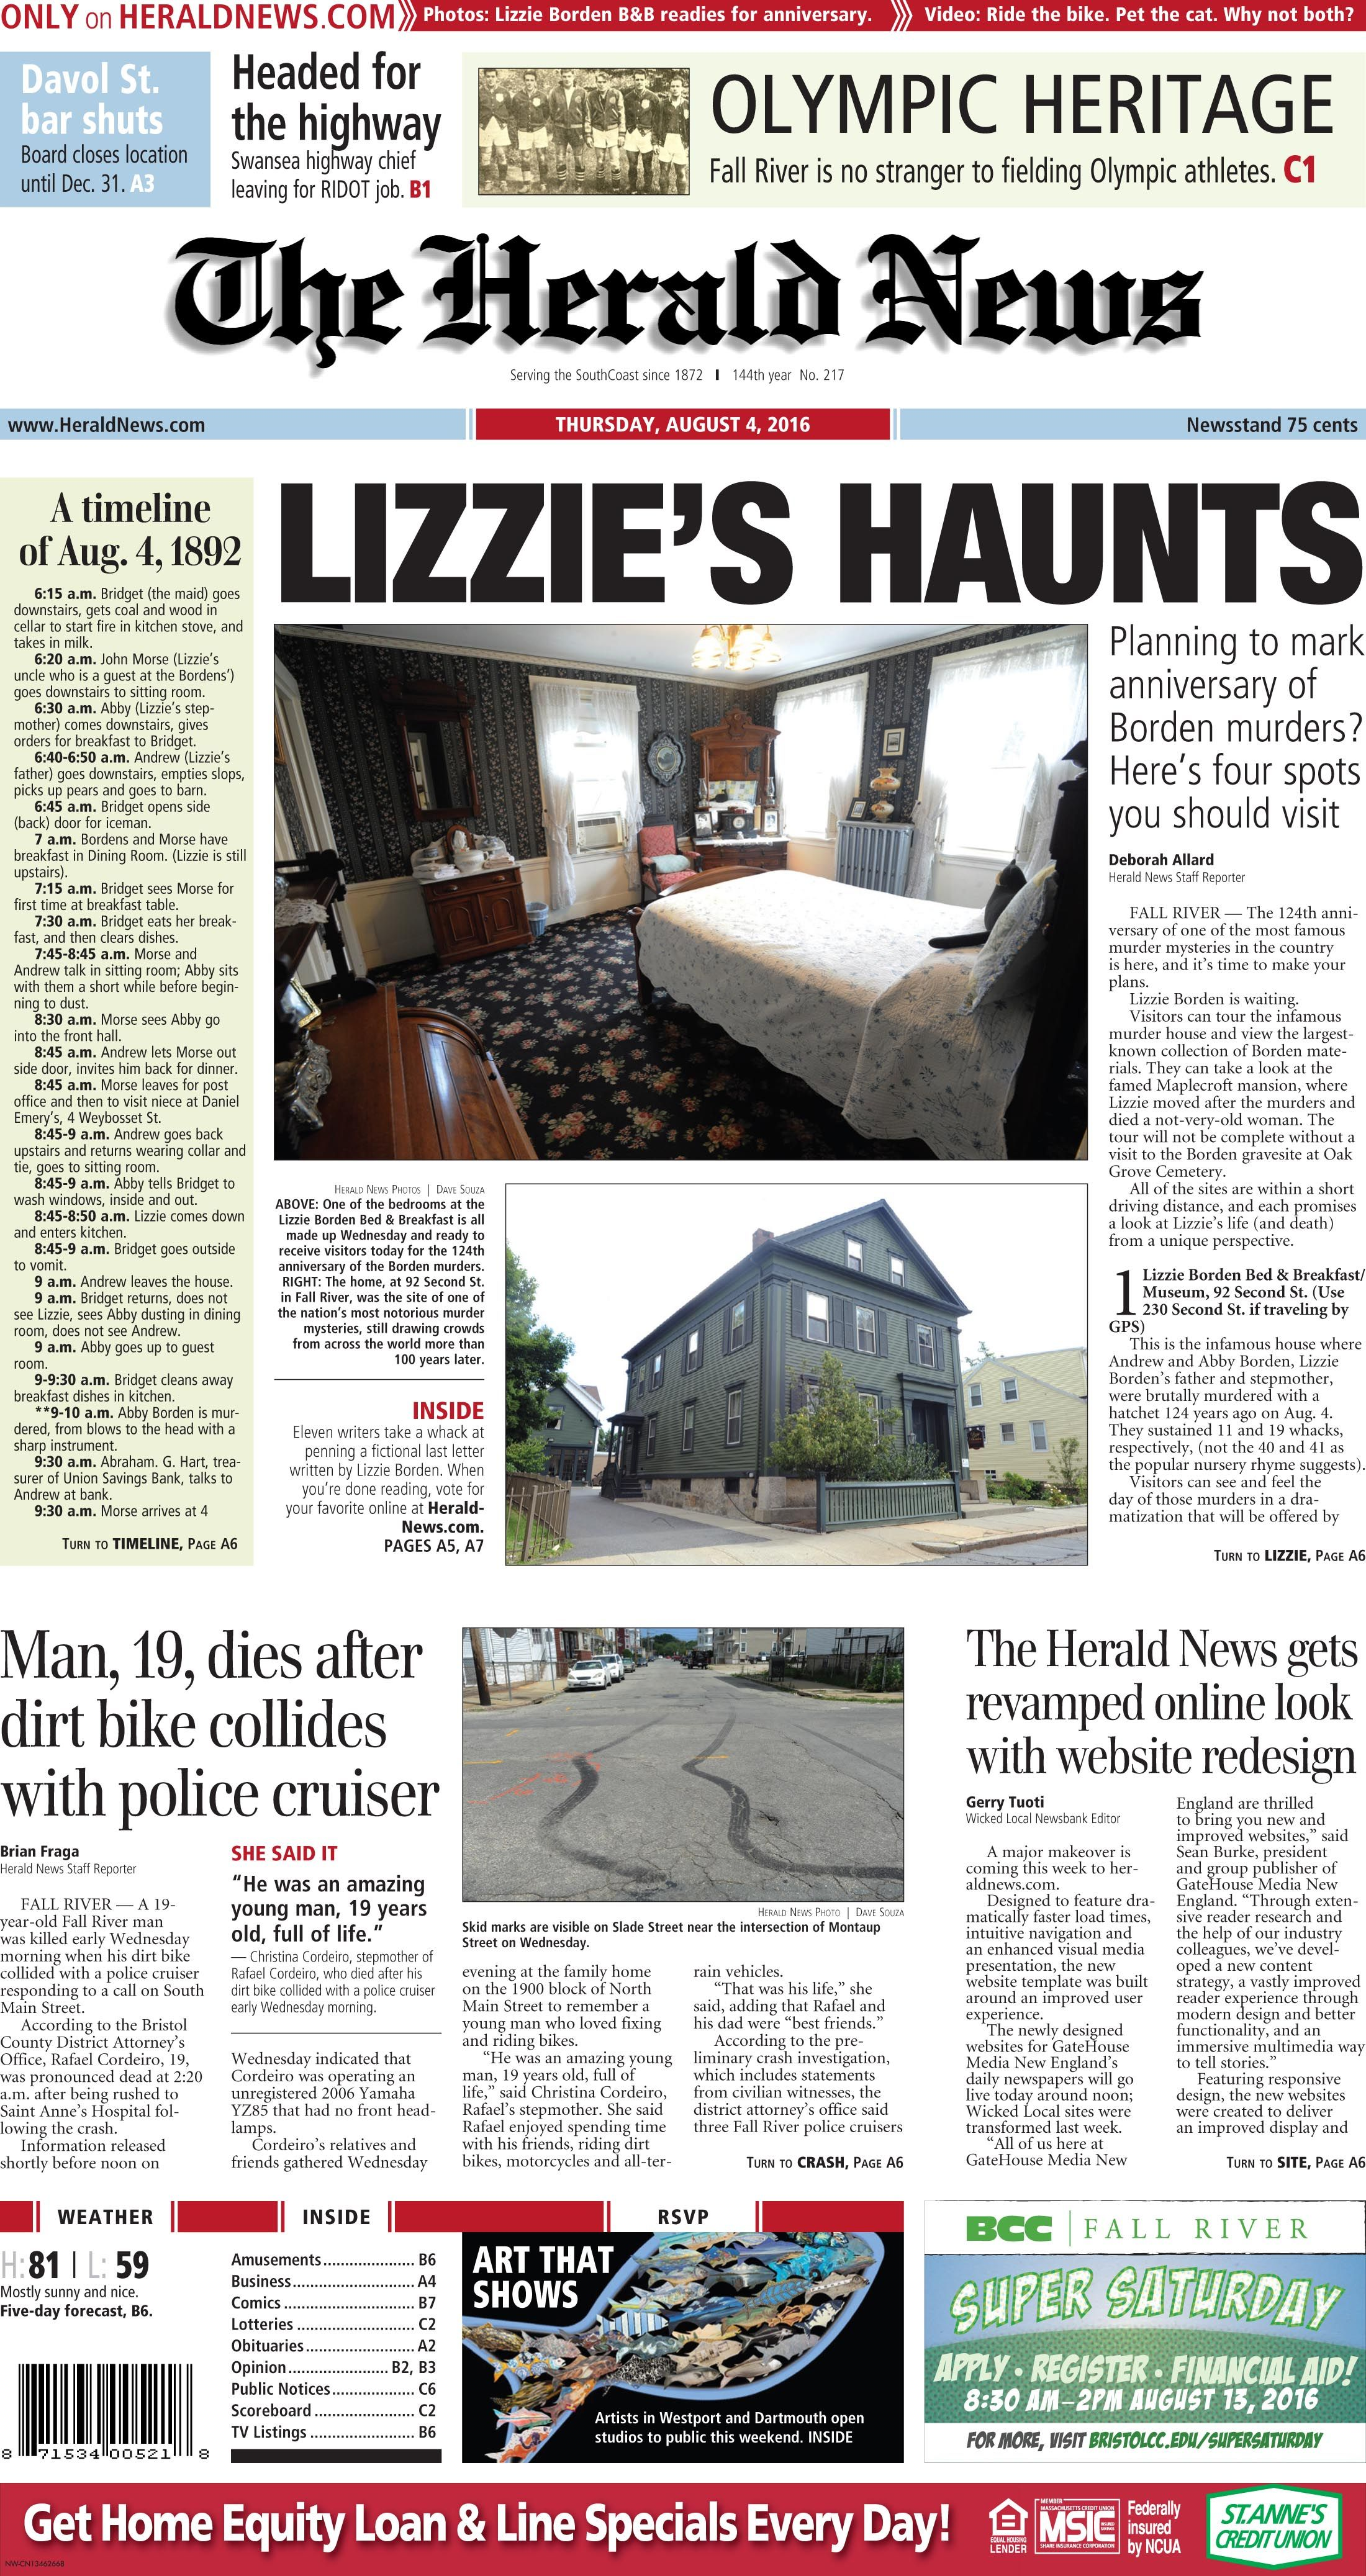 The Front Page Of The Herald News For Thursday Aug 4 2016 Herald News Fall River Herald